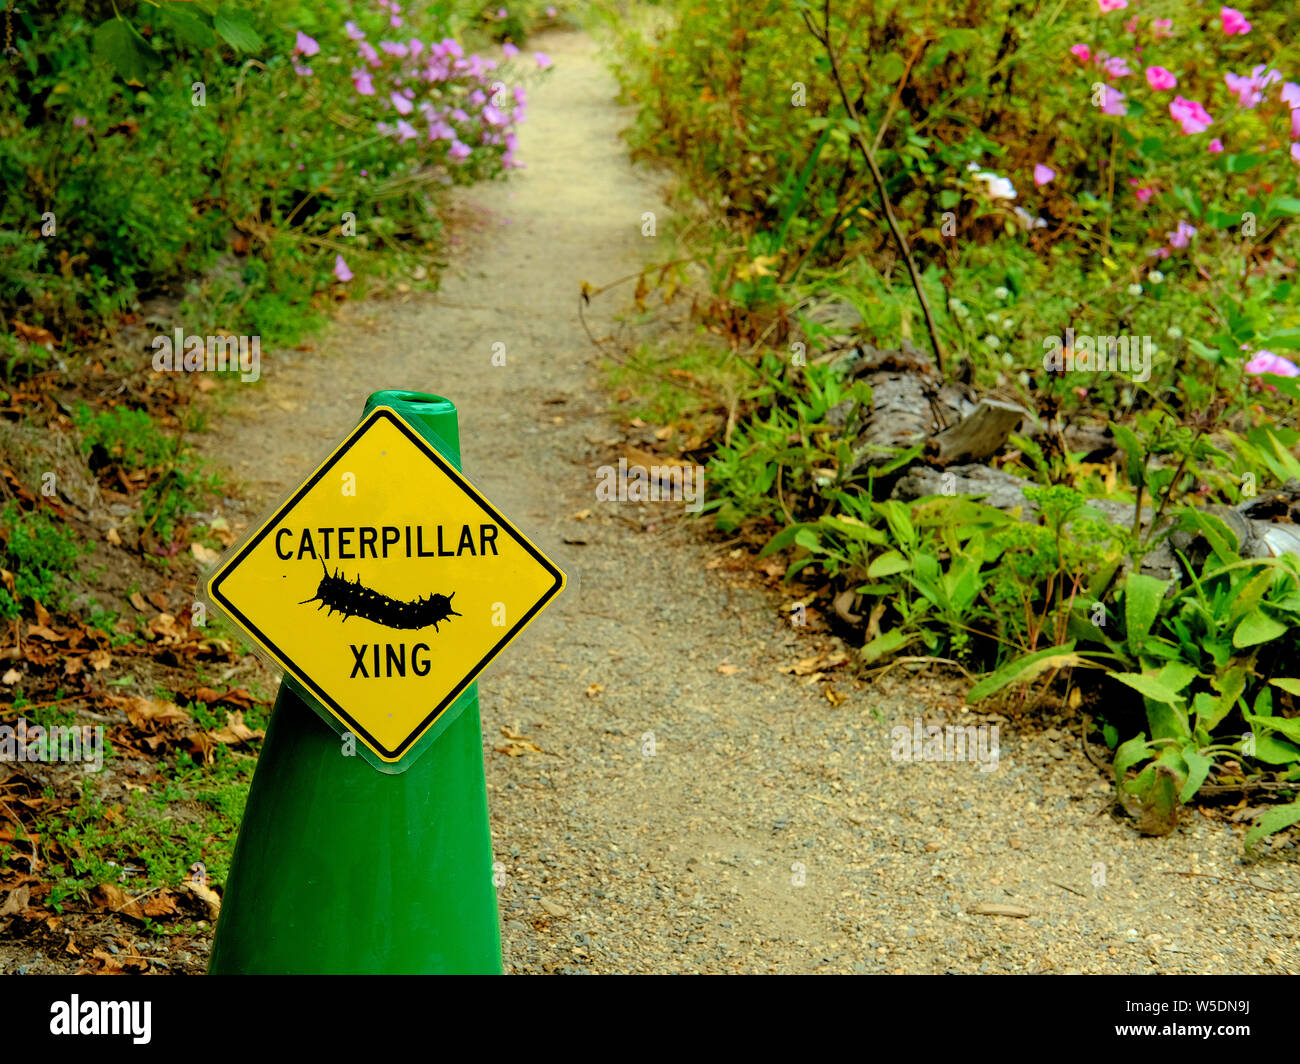 A yellow yield sign on a green cone for a Caterpillar Crossing on a dirt path at the San Francisco Botanical Garden in San Francisco, California, USA. Stock Photo